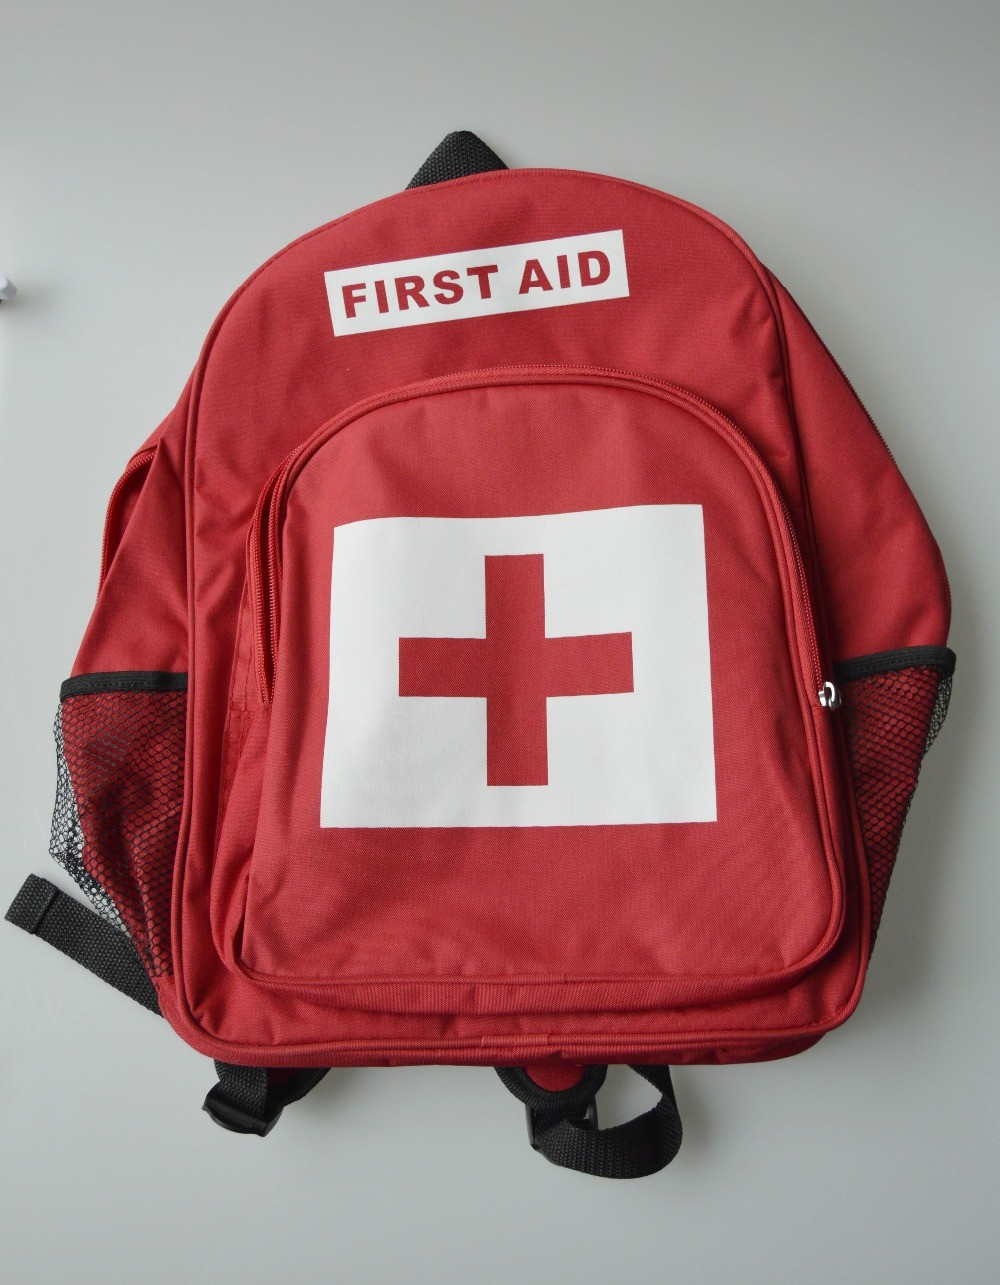 Empty-Bag-Backpack-for-First-Aid-Kit-Survival-Travel-Camping-Hiking-Medical-Emergency-Kits-Pack-Safe (4)